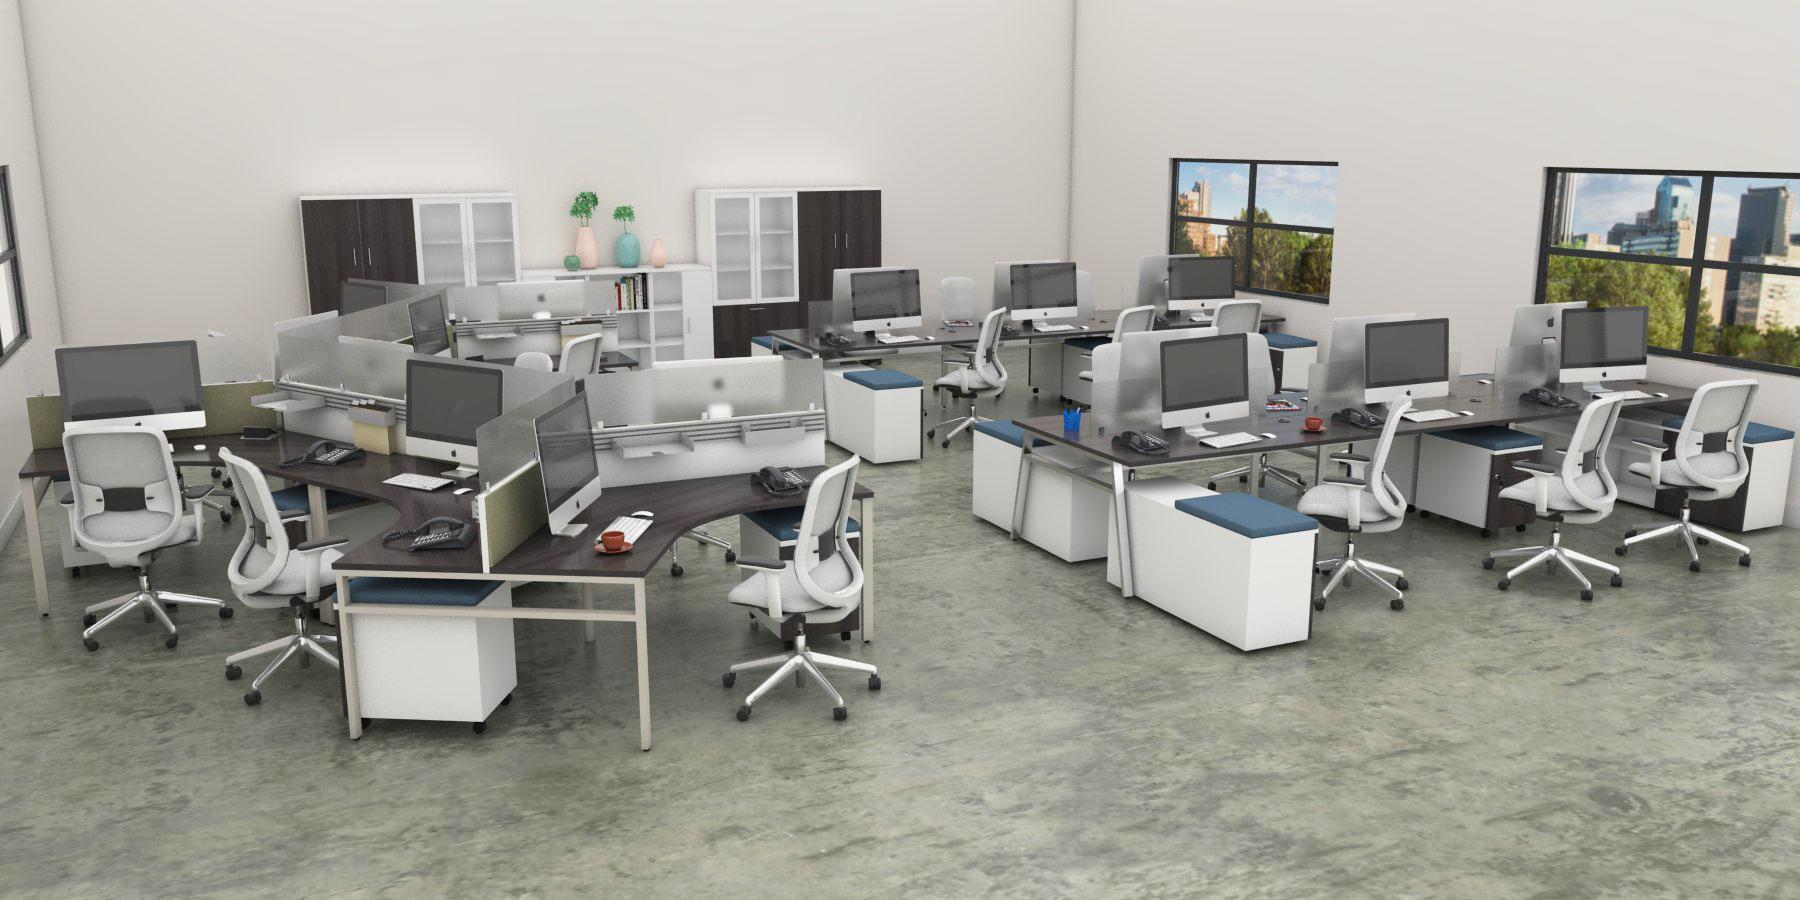 Office Furniture Toronto - Modern Bench Workstations and Filing Cabinets